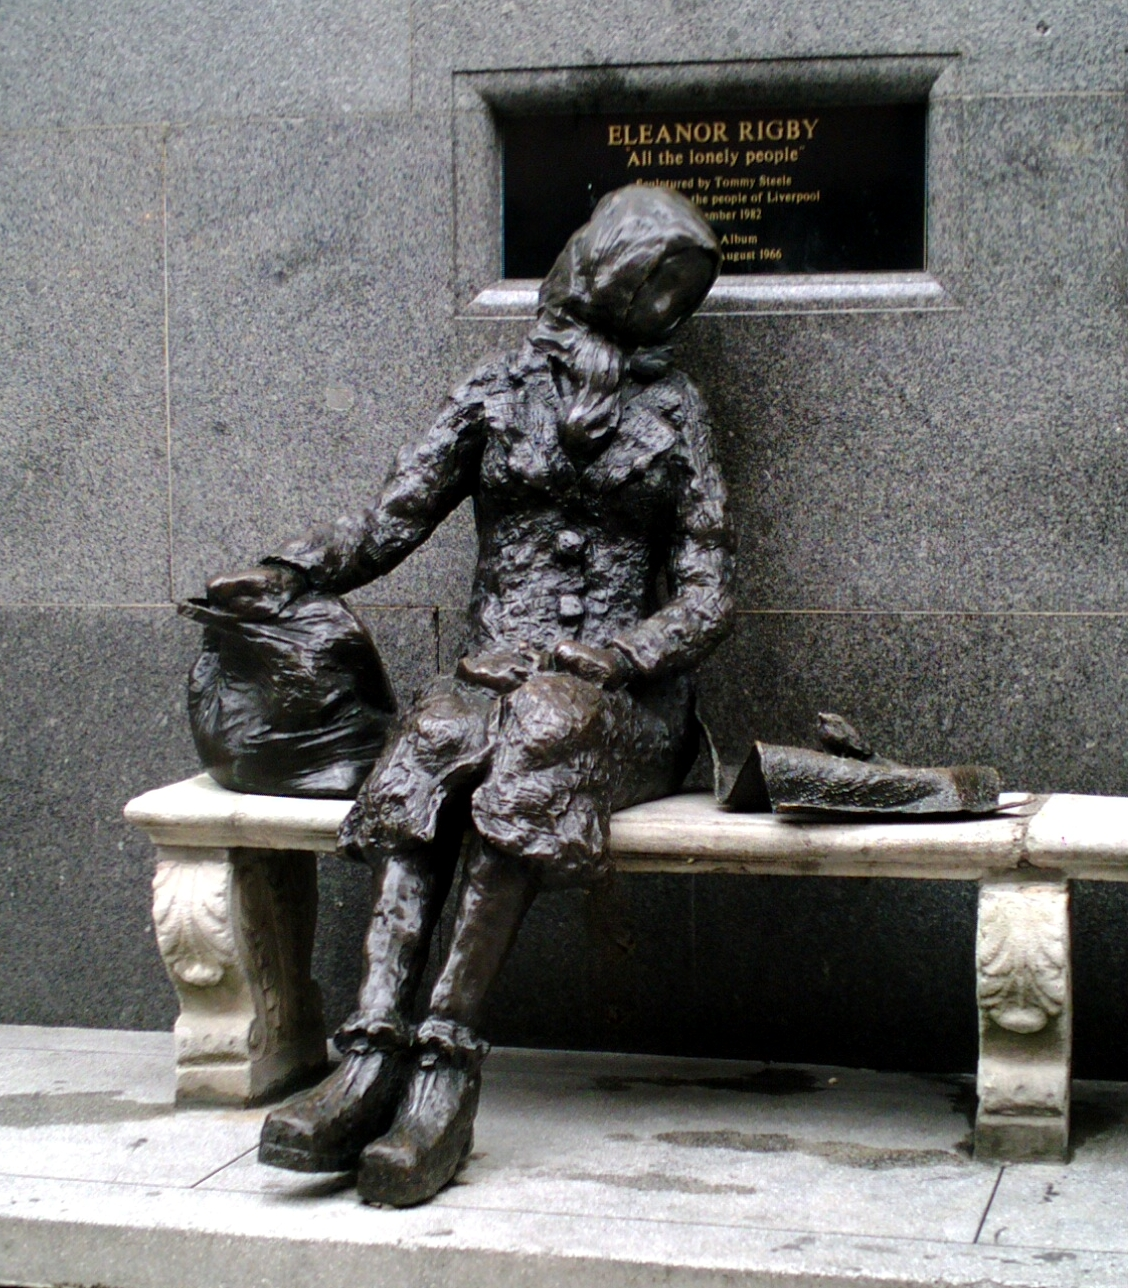 http://upload.wikimedia.org/wikipedia/commons/9/98/EleanorRigbyStatue.jpg